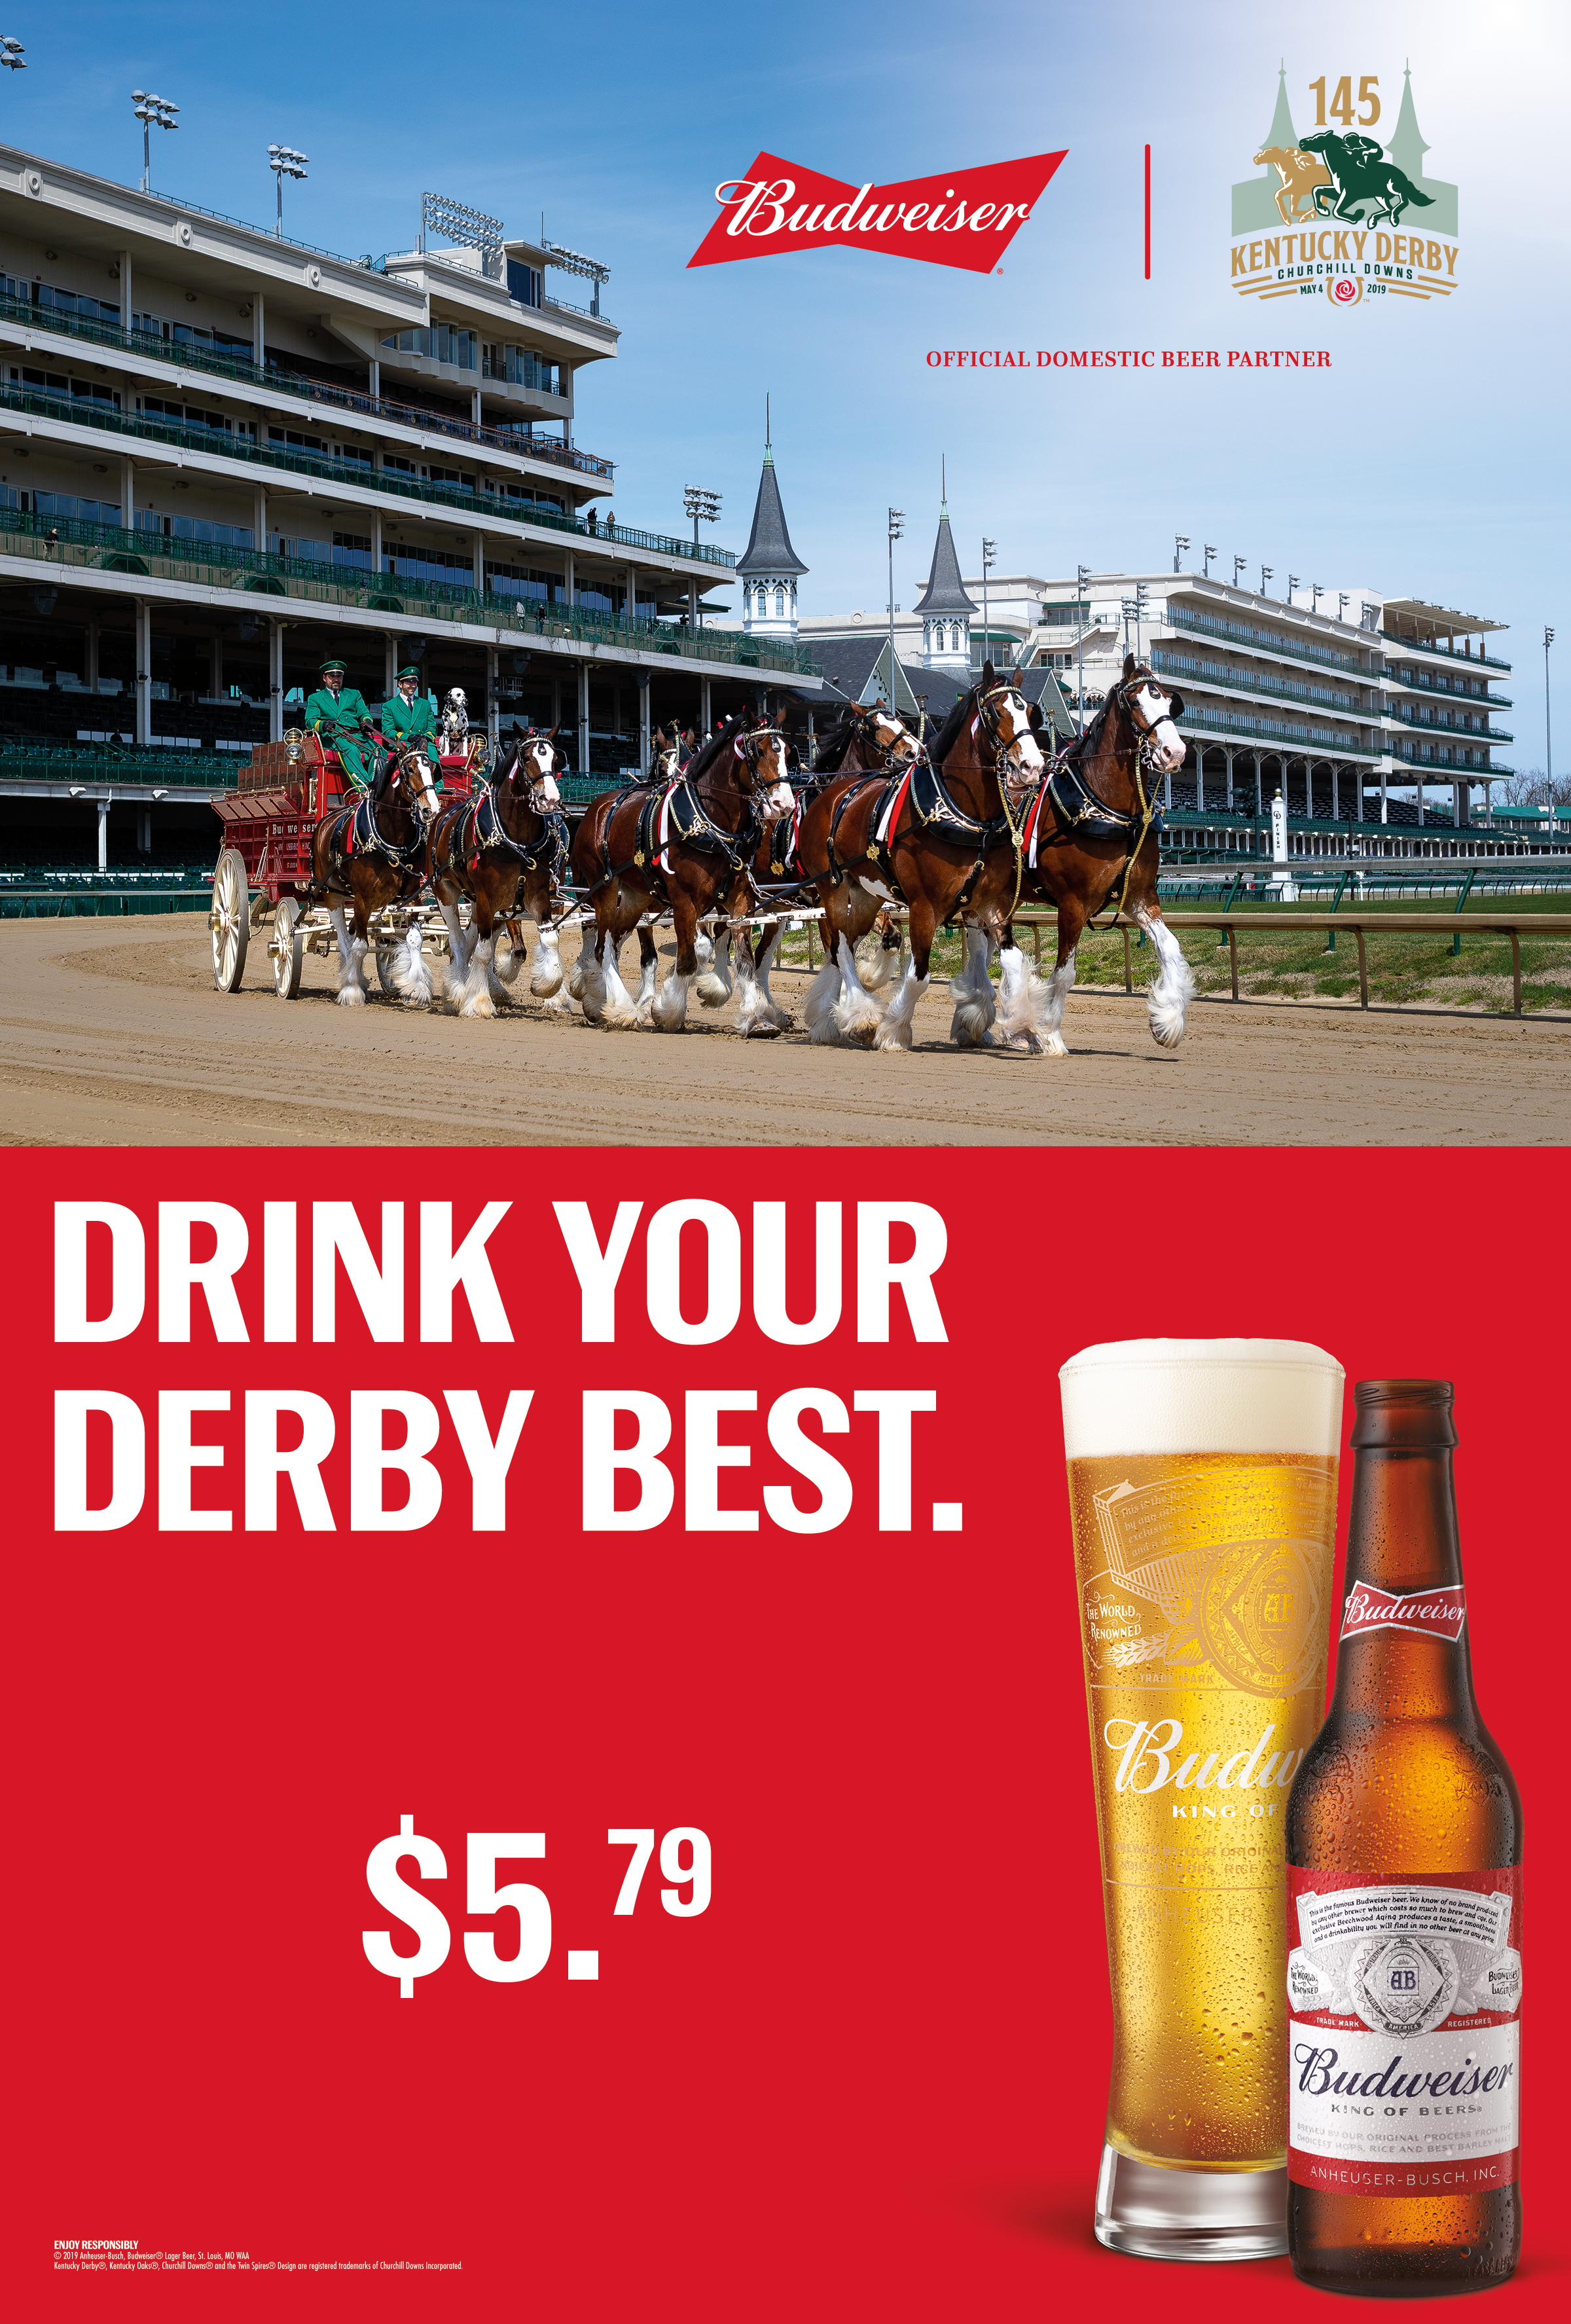 814293_Bud_KentuckyDerby_Drink_2x3_mr4a.png